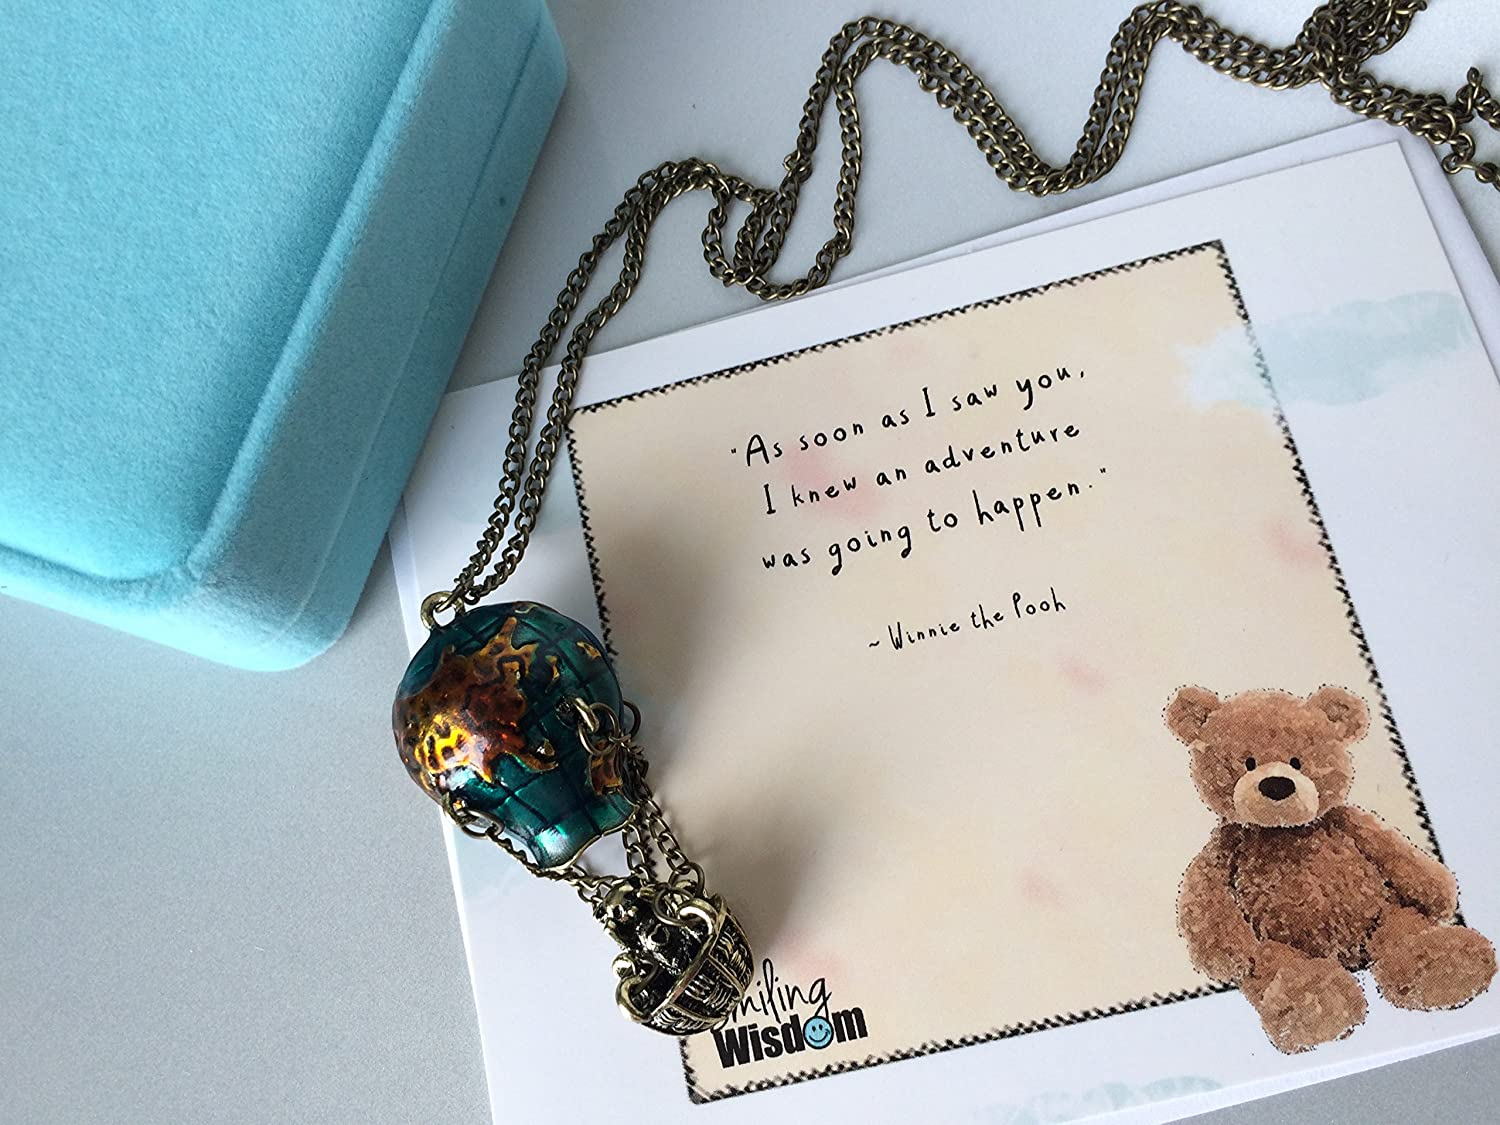 d608da90202f Smiling Wisdom - Hot Air Balloon Necklace Gift Set - Winnie the Pooh Quote  - Friendship